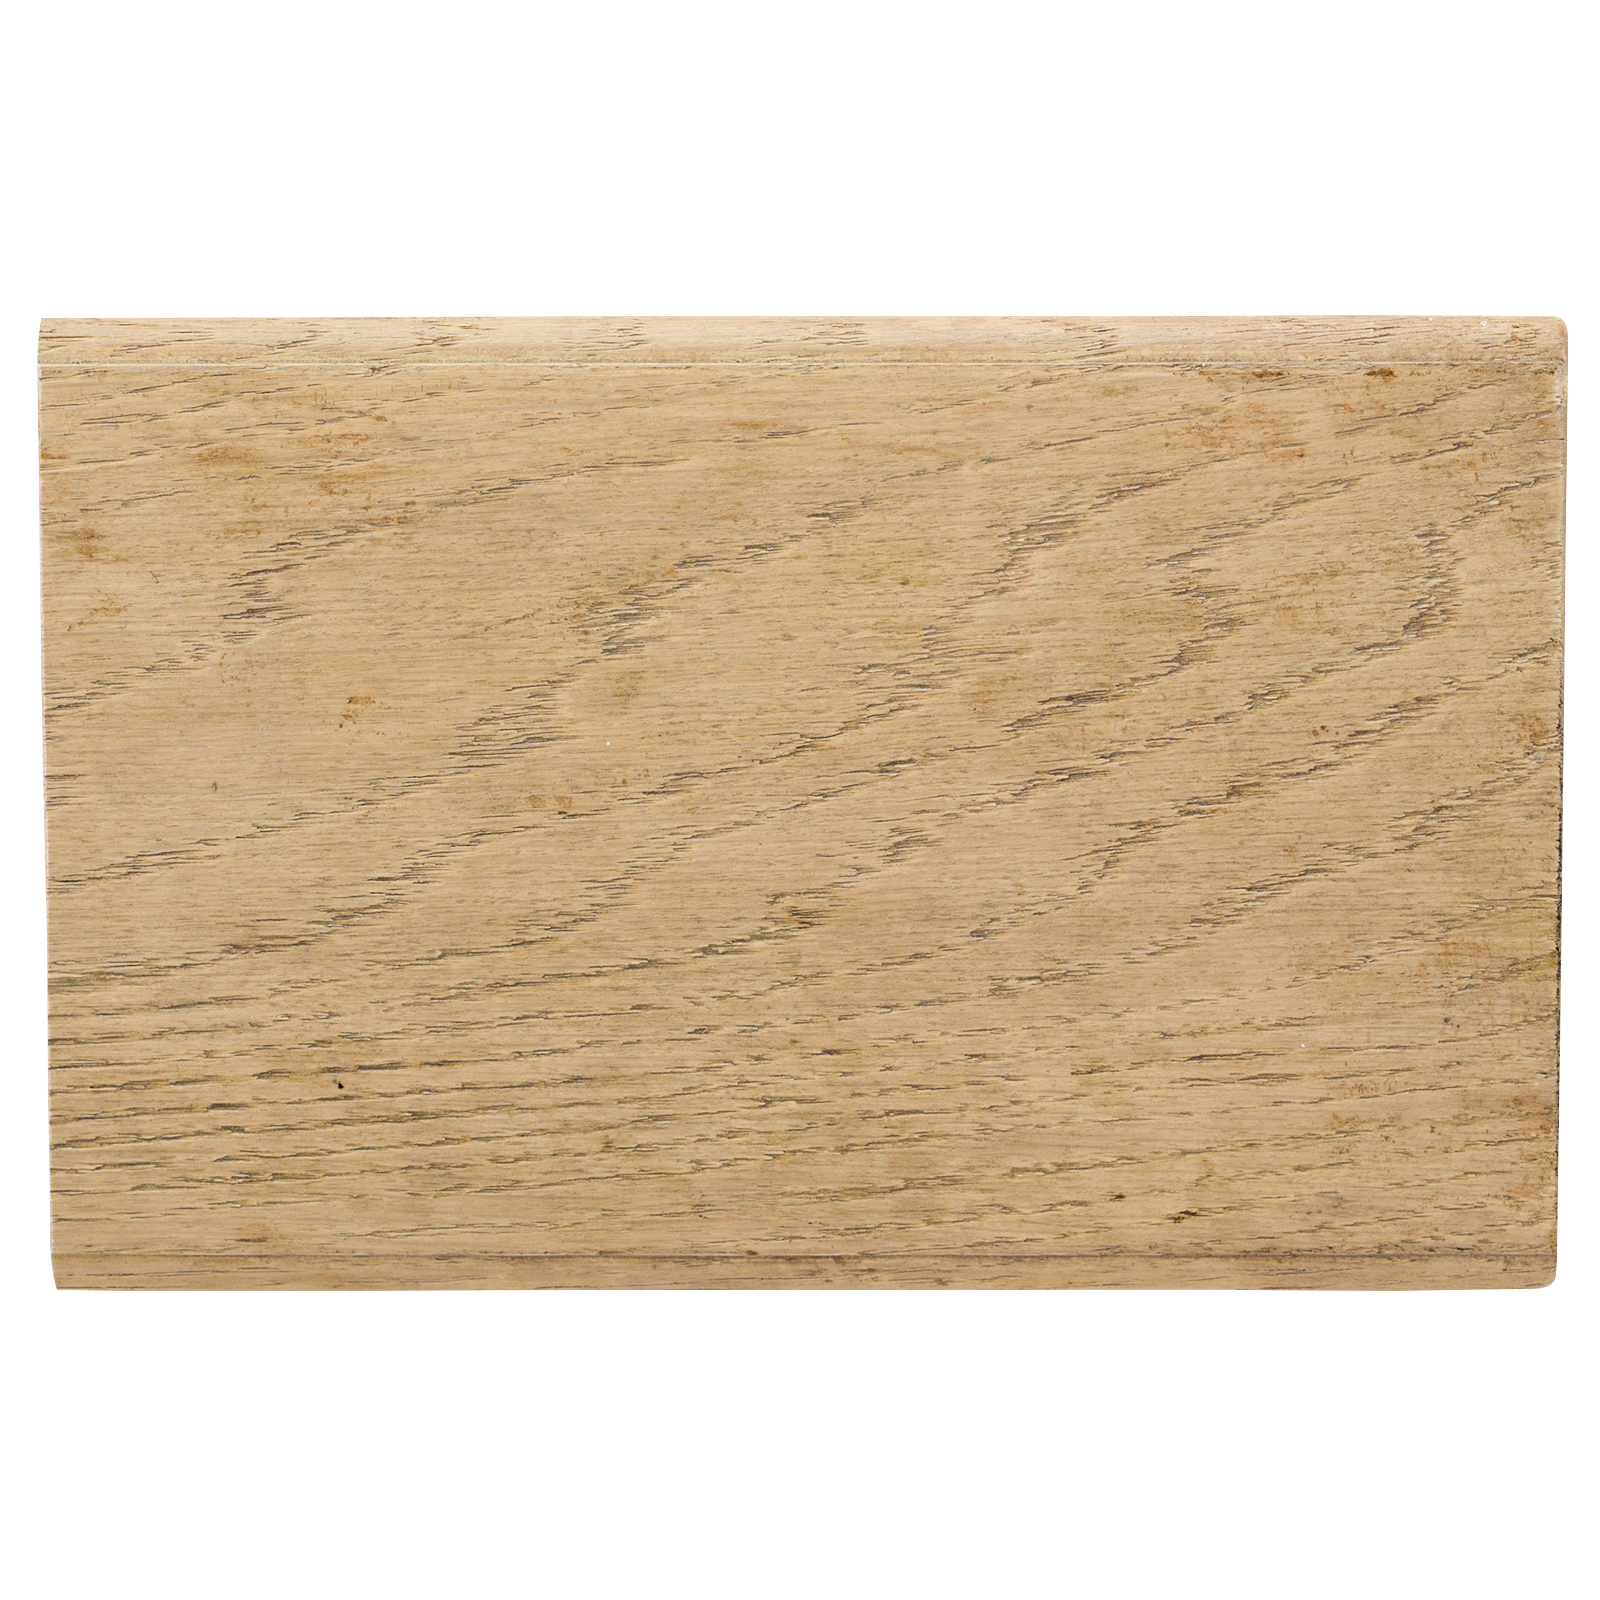 Dover Light Grey Oak_more green_V3